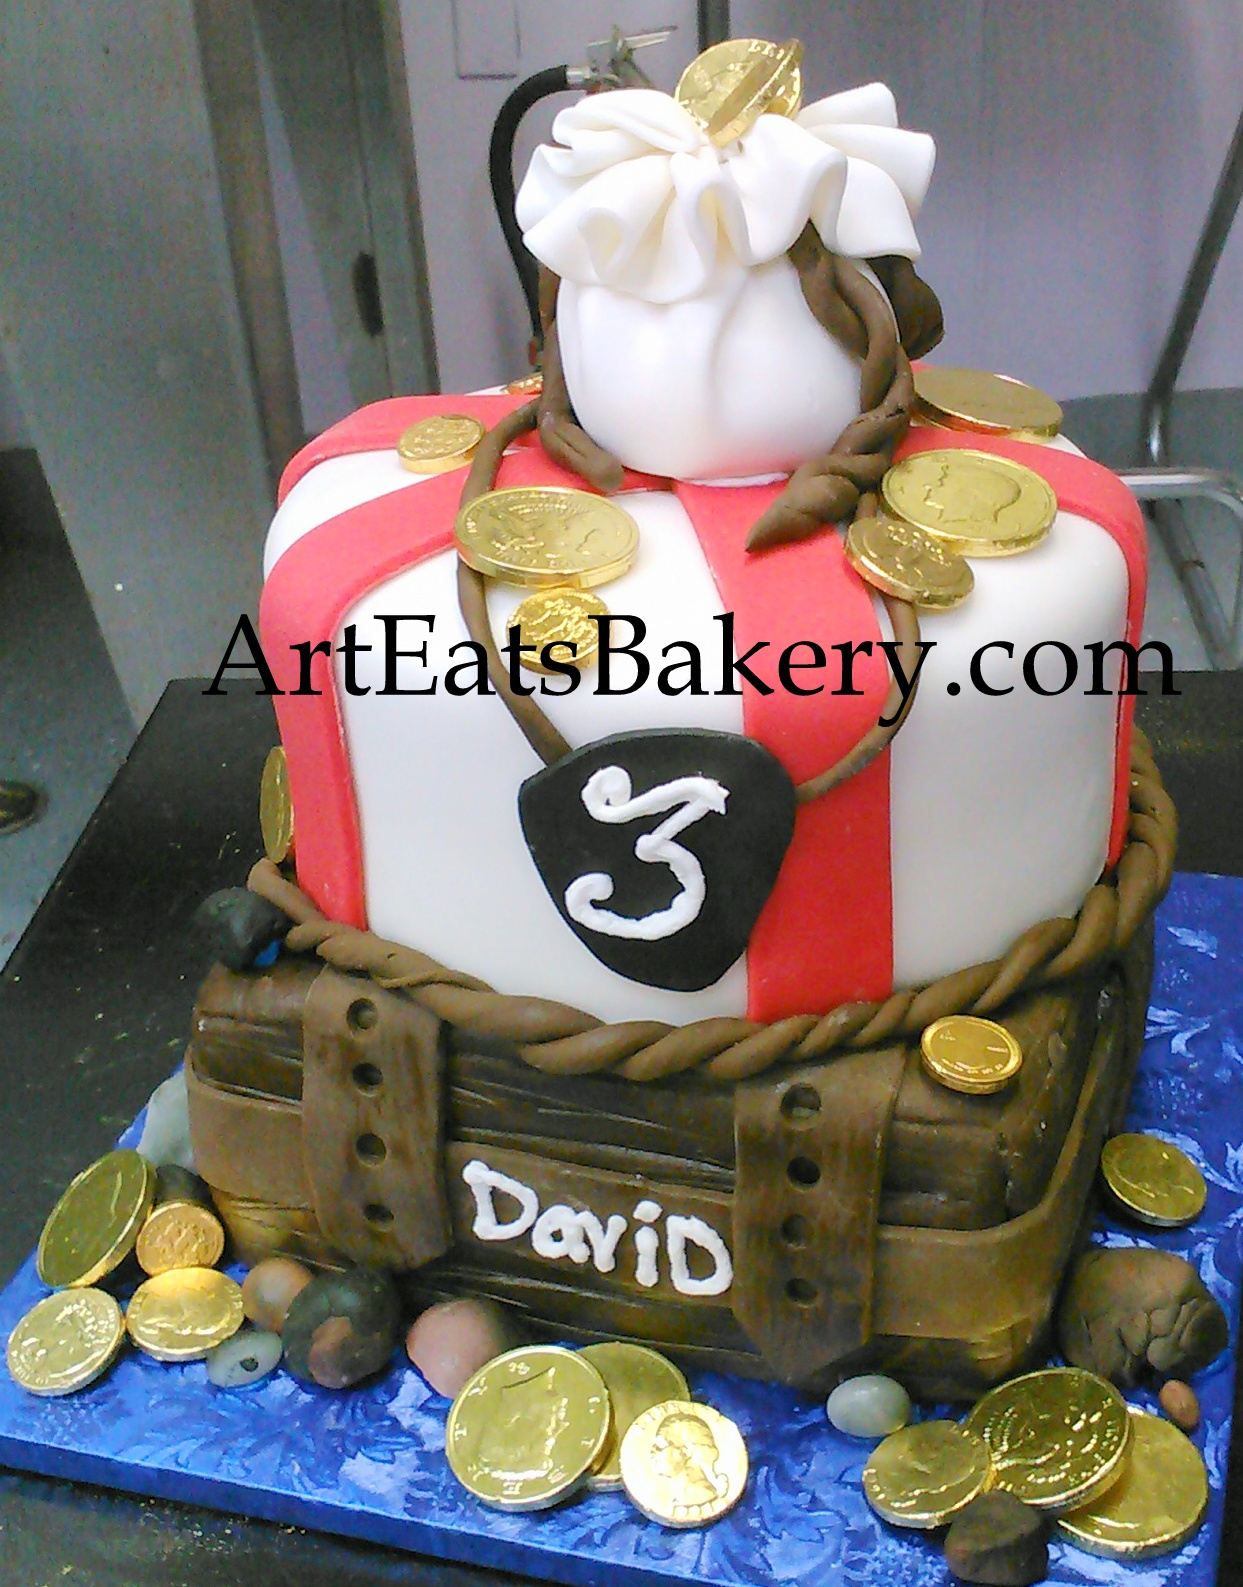 Boy's Pirate treasure chest creative birthday cake with edible money bag and chocolate gold coins.jpg